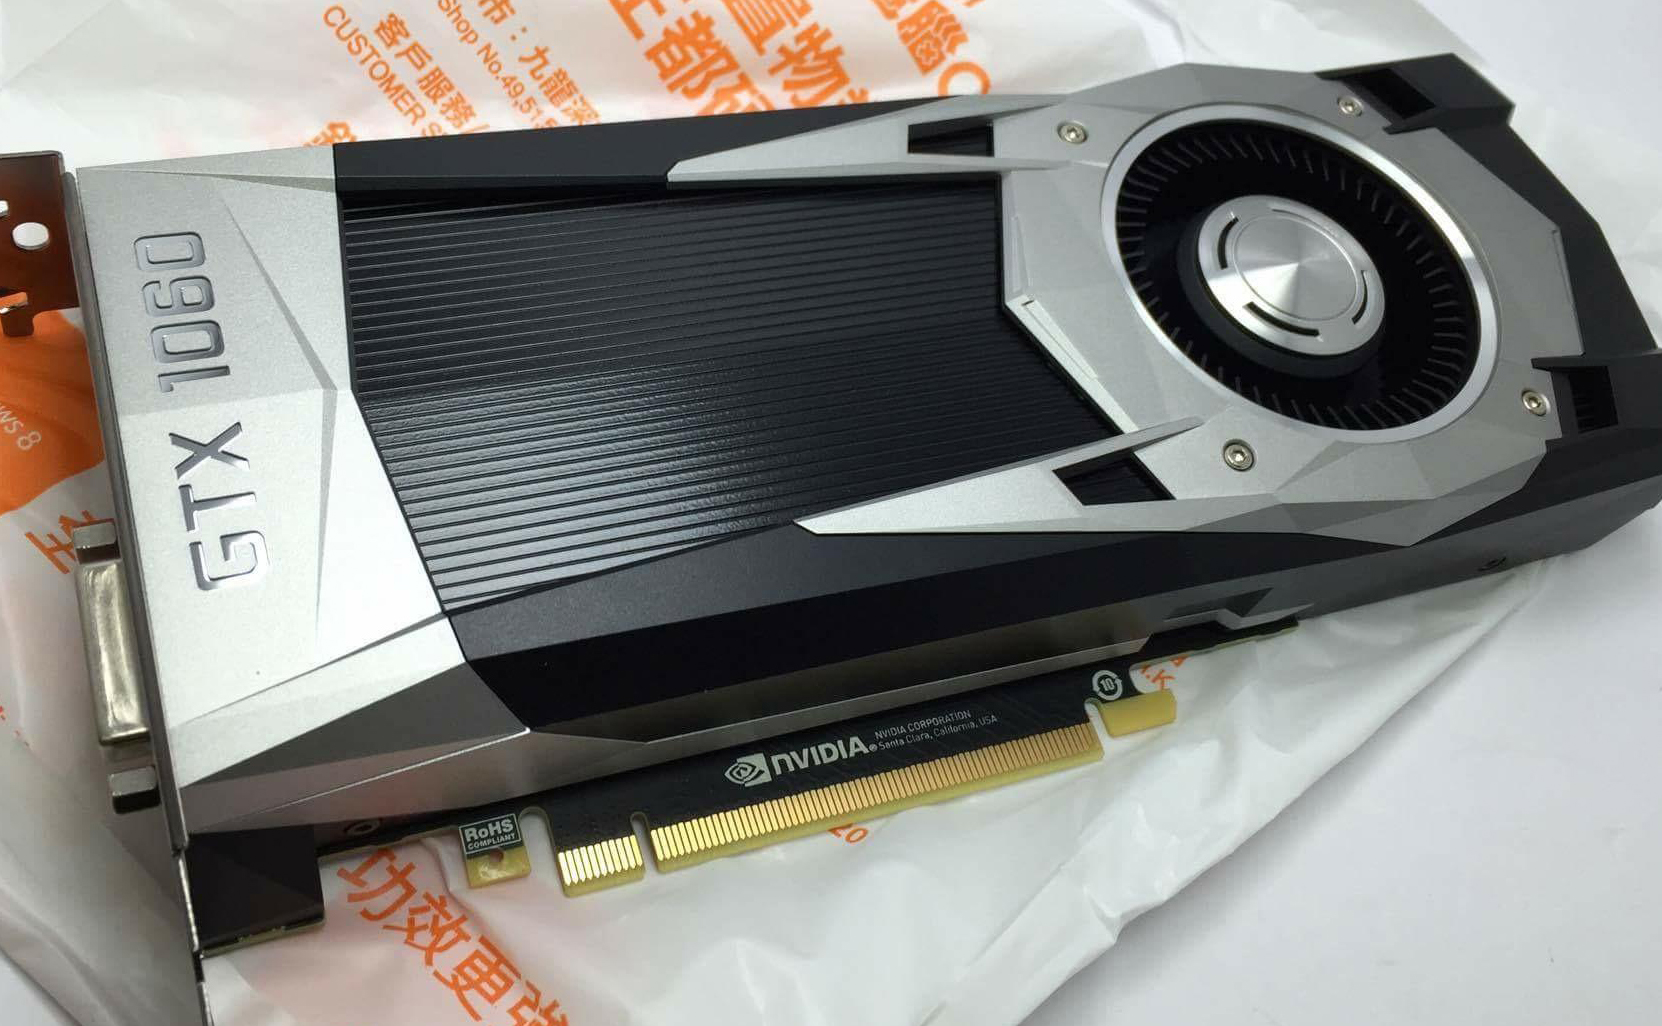 Photo of rumors becoming a reality: model slides with technical details about the GeForce GTX 1060